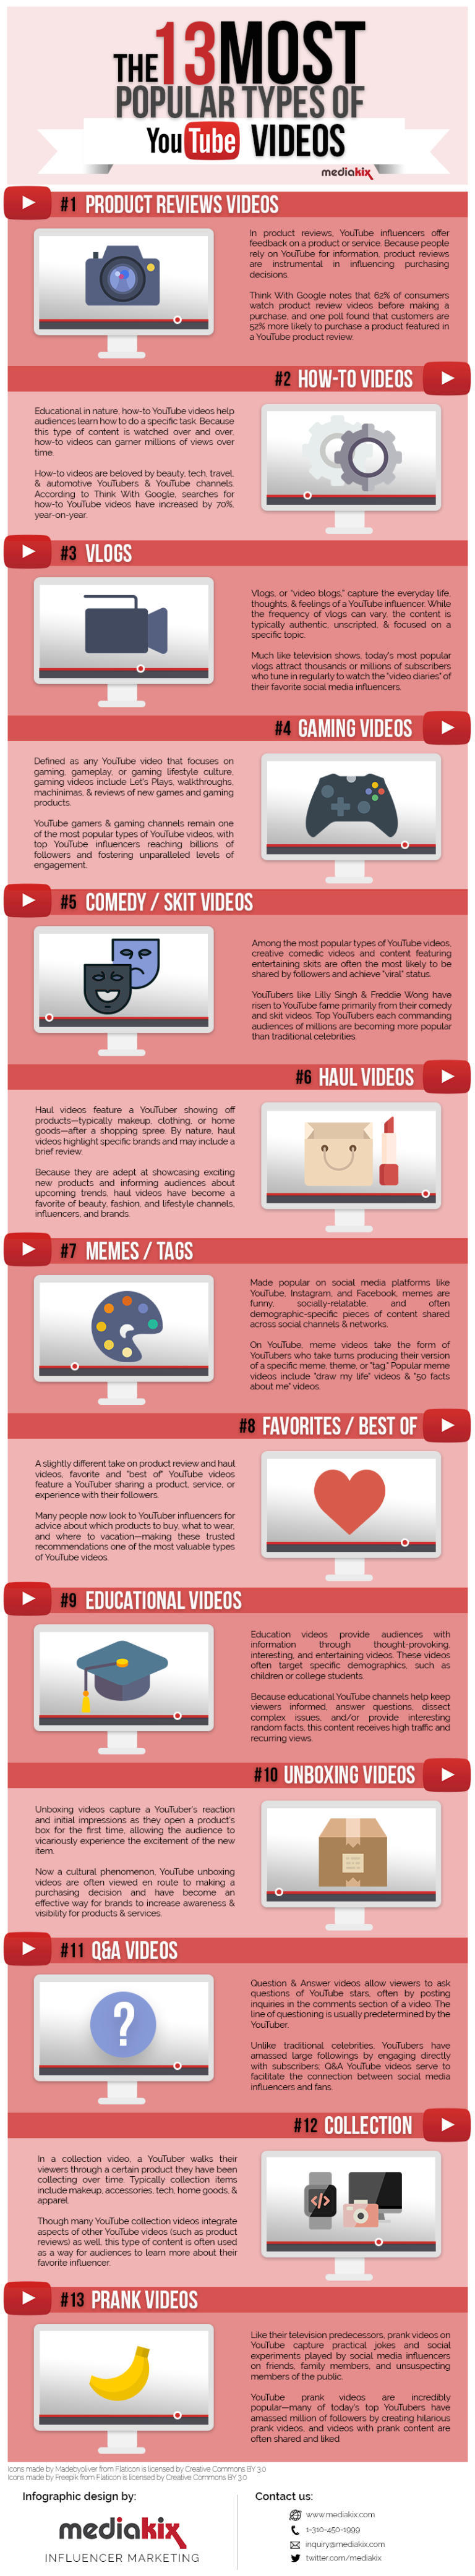 Most Popular Types of YouTube Videos [INFOGRAPHIC]